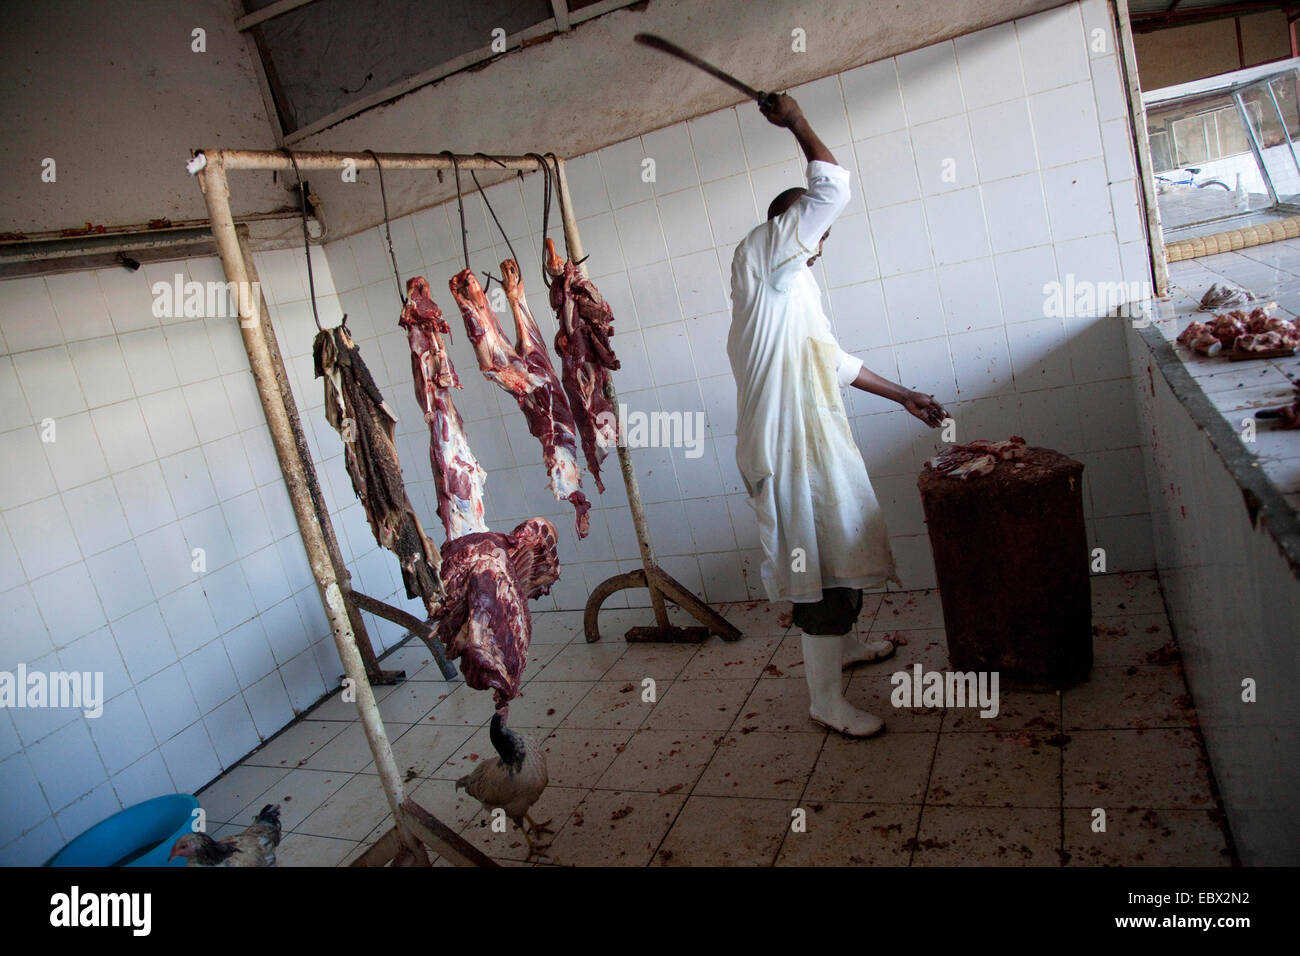 butcher cutting meat on a log of wood, Rwanda, Nyamirambo, Kigali - Stock Image